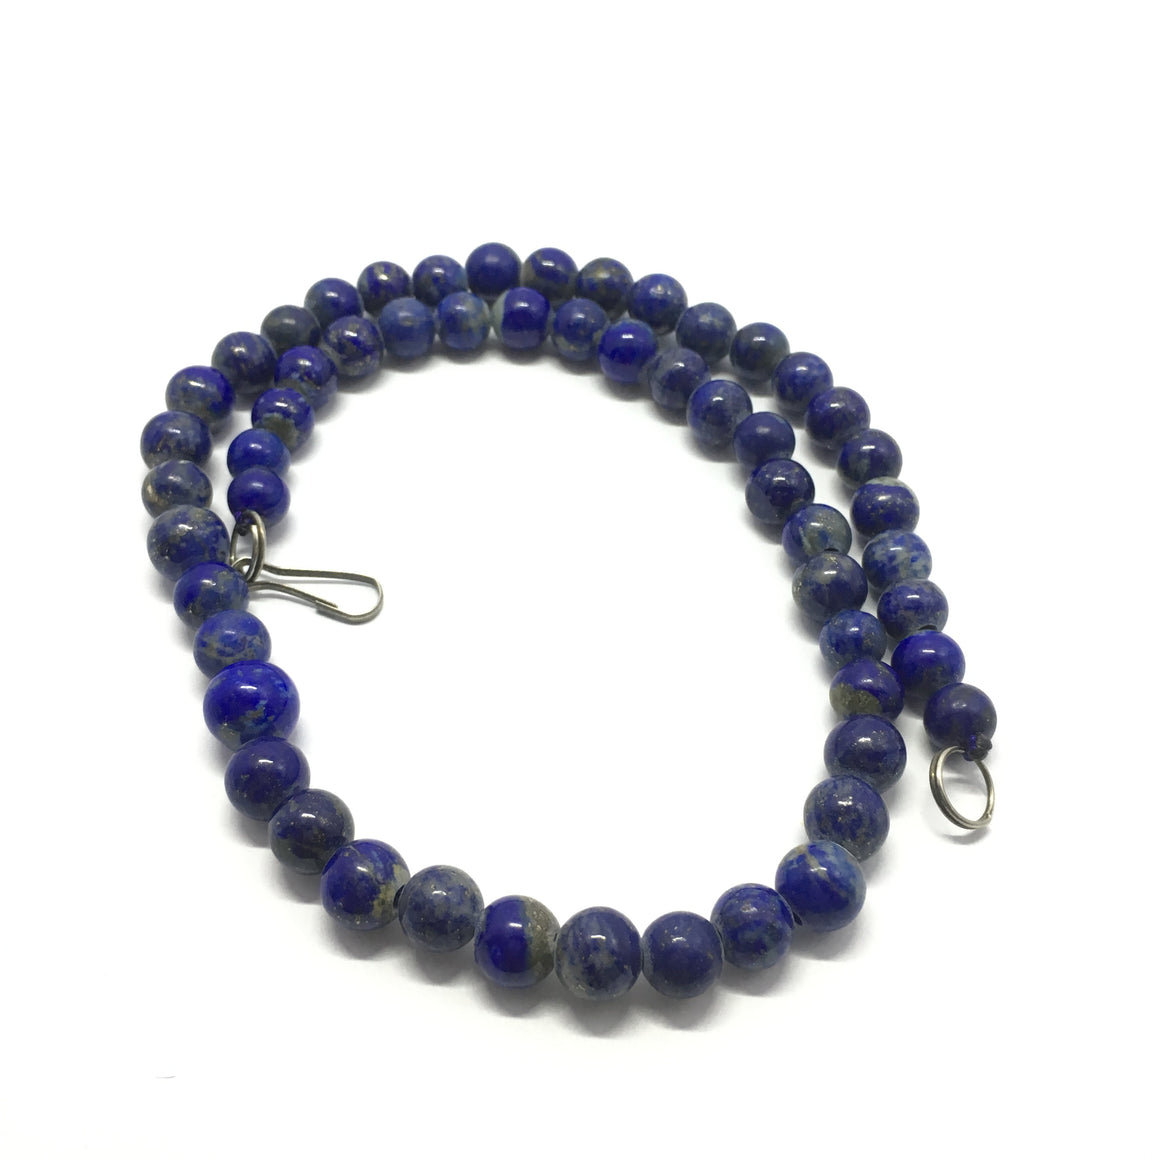 182.5 Carat, 55 Round Beads Lapis Lazuli Necklace With Metal Lock